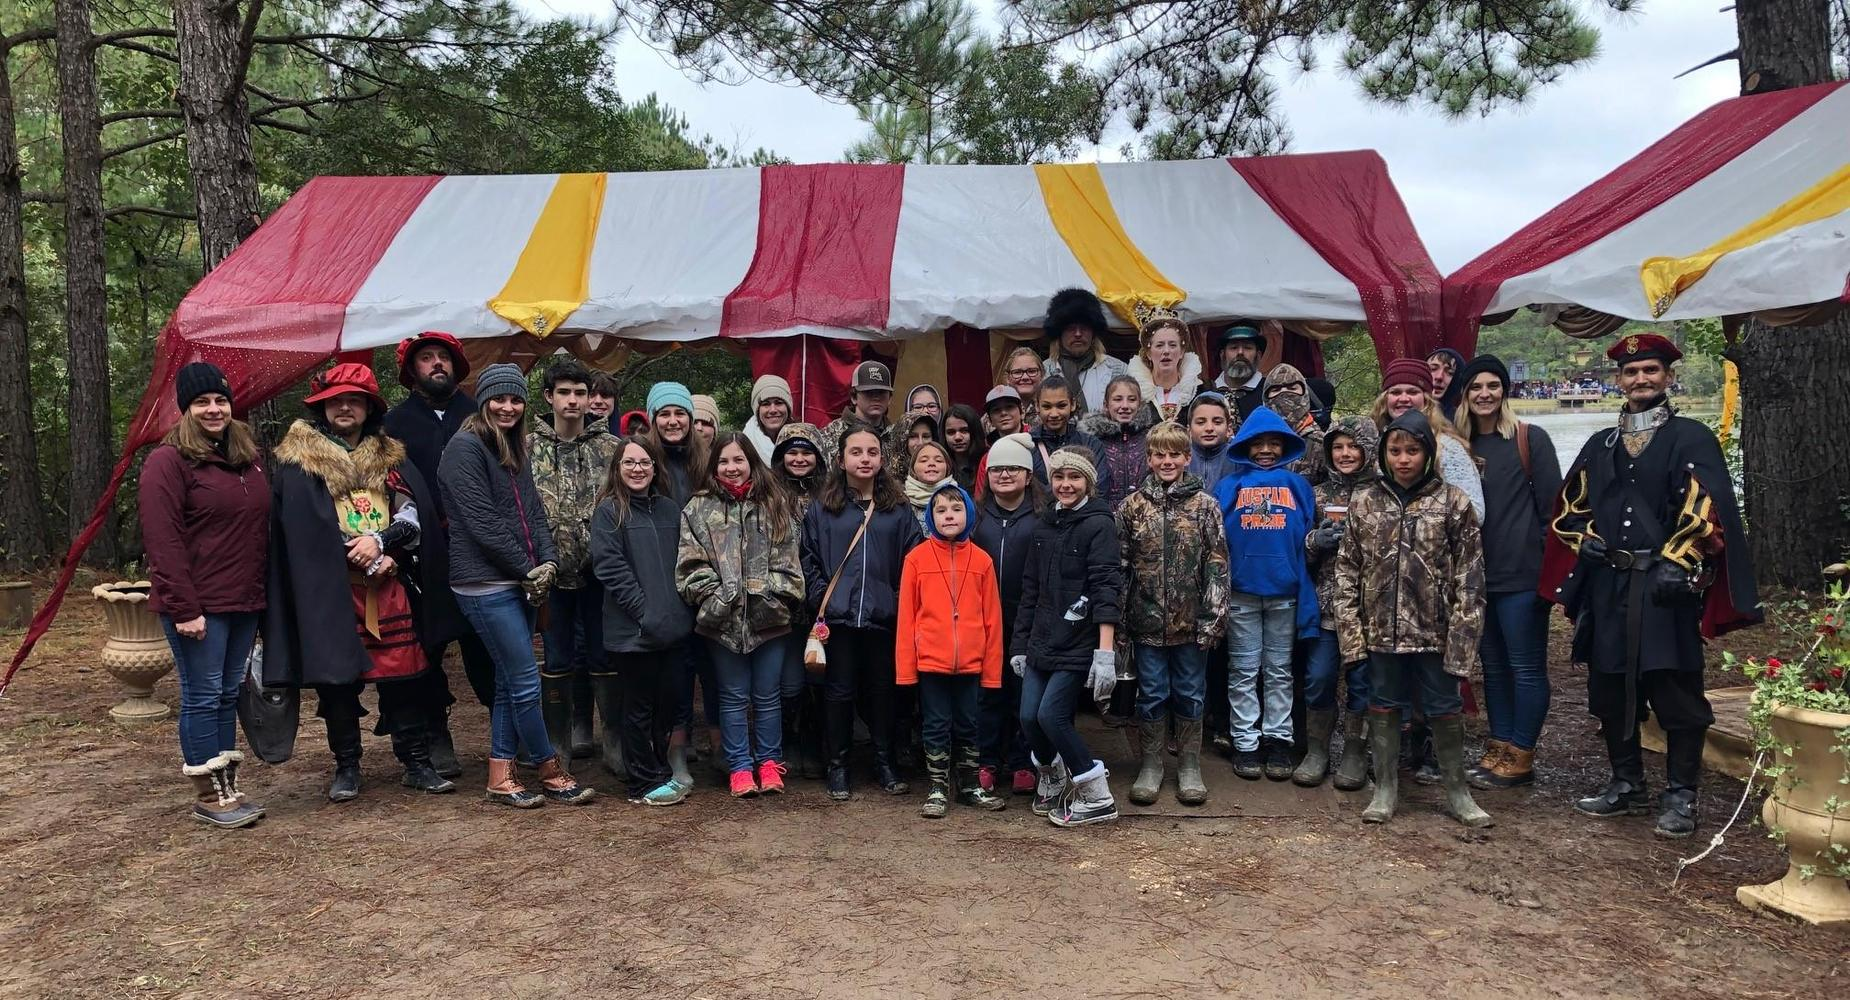 group pic of students at LA Renaissance Festival